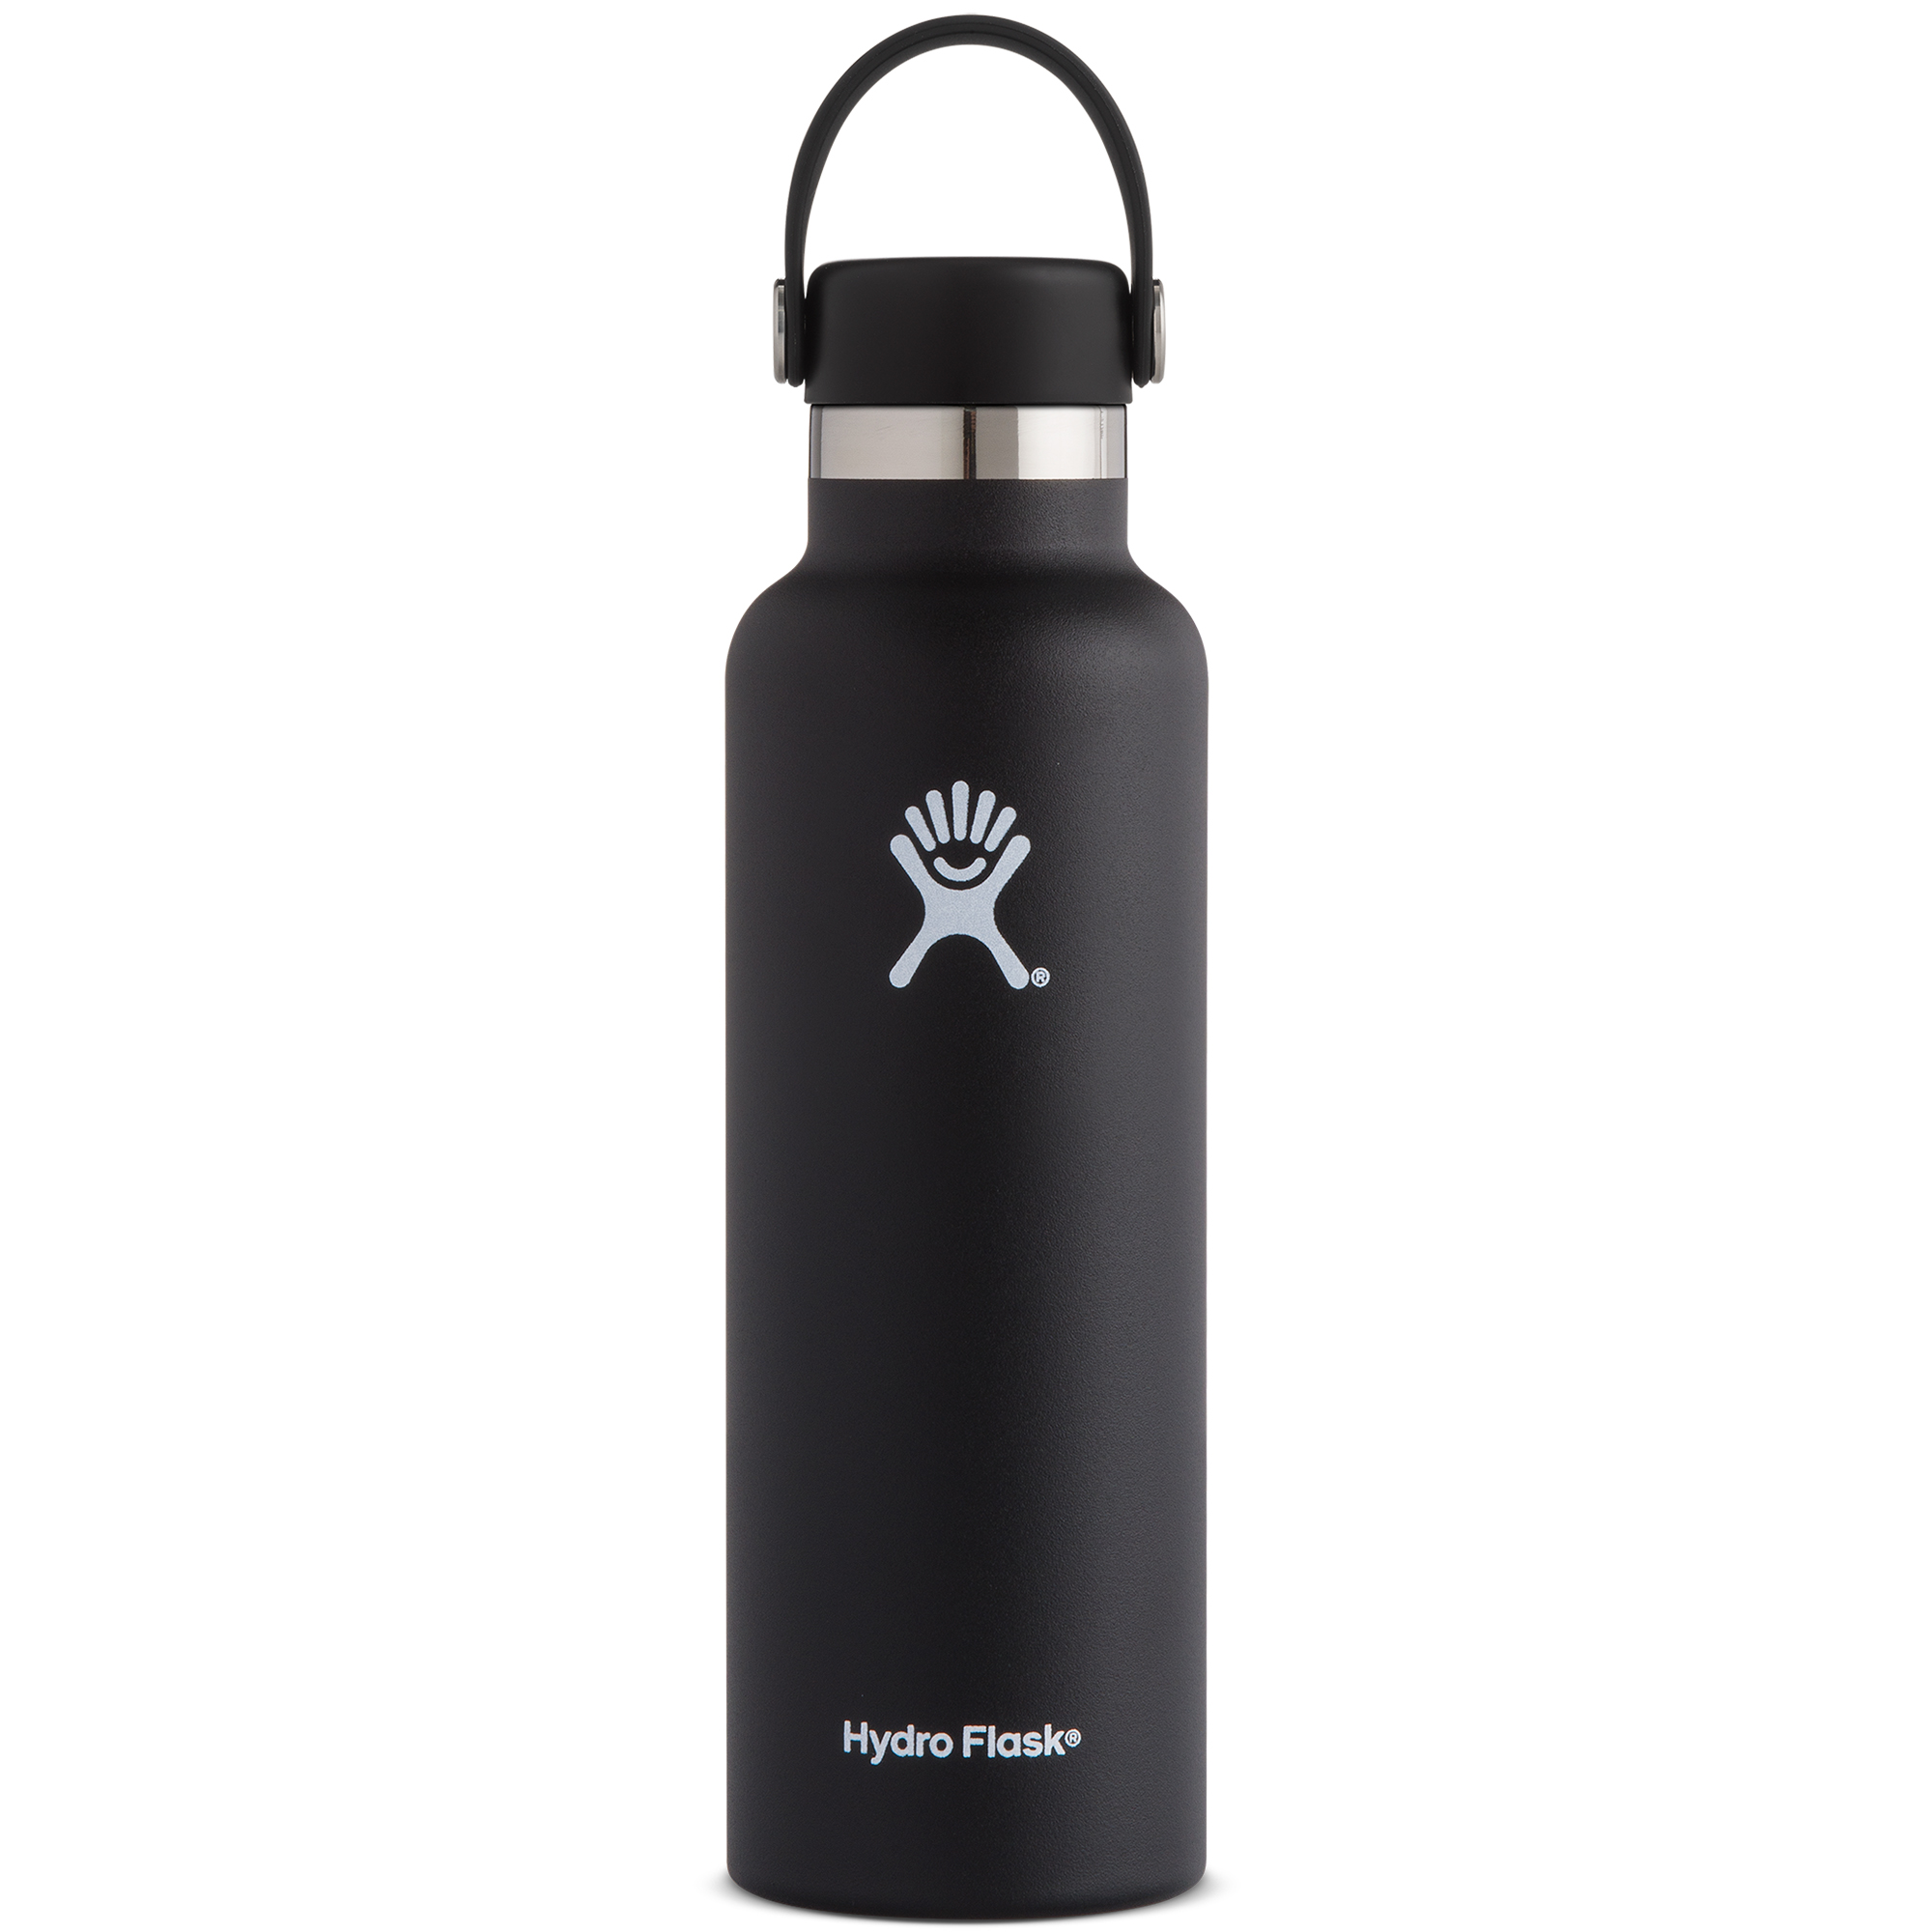 Hydro Flask 21-Oz. Vacuum-Insulated Standard Mouth Bottle With Flex Cap, Black